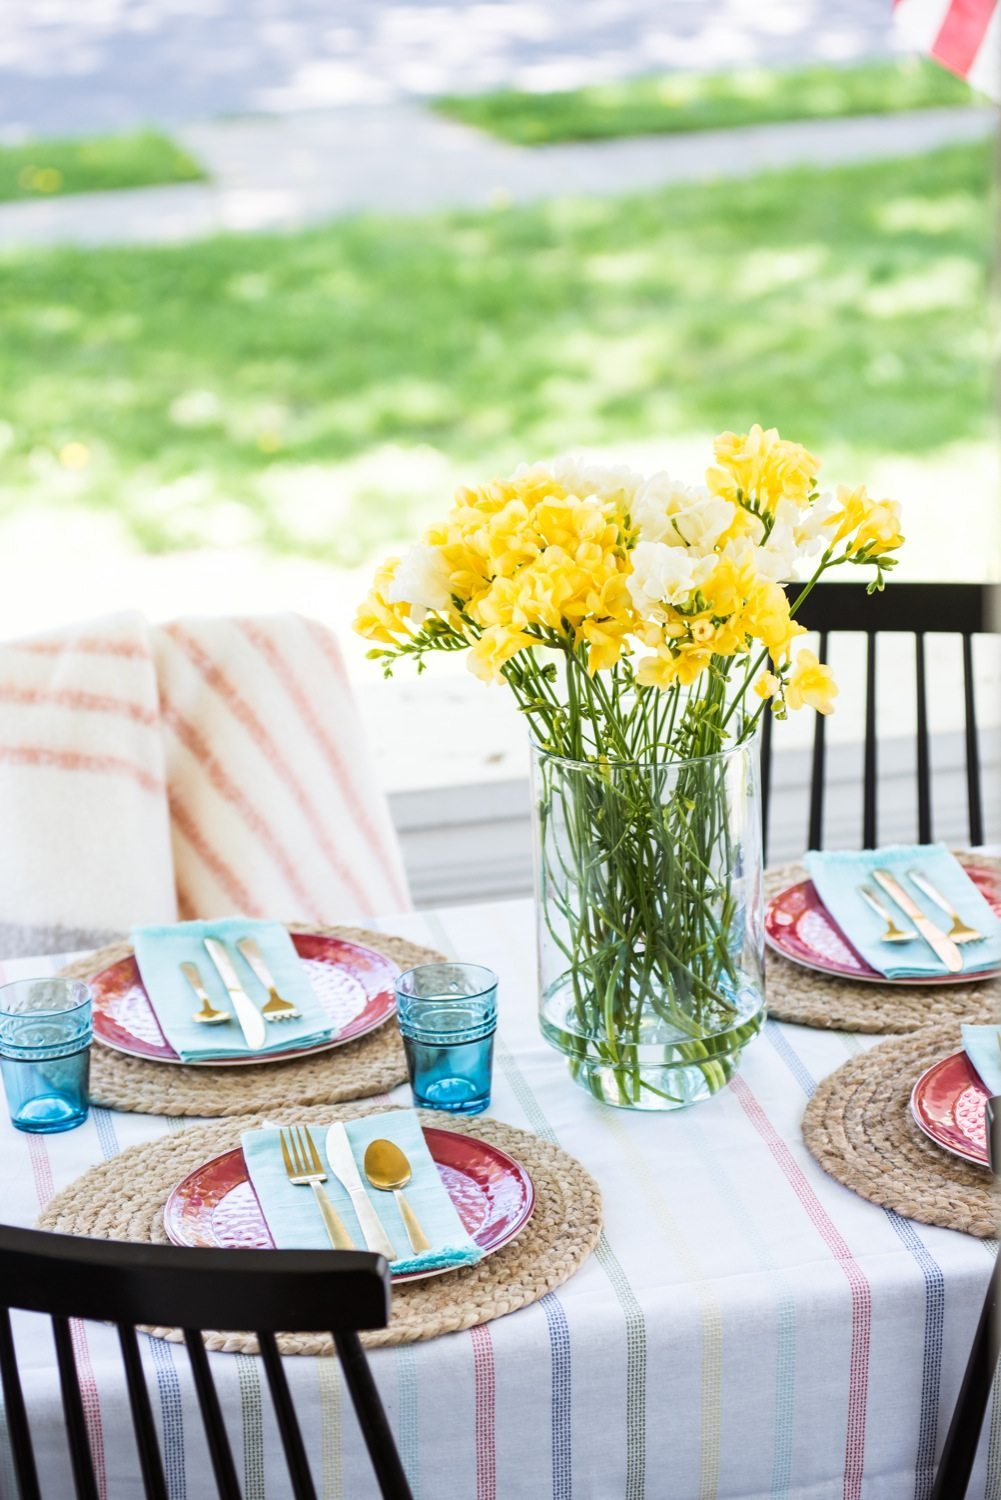 How to Host a Chic Patriotic Picnic